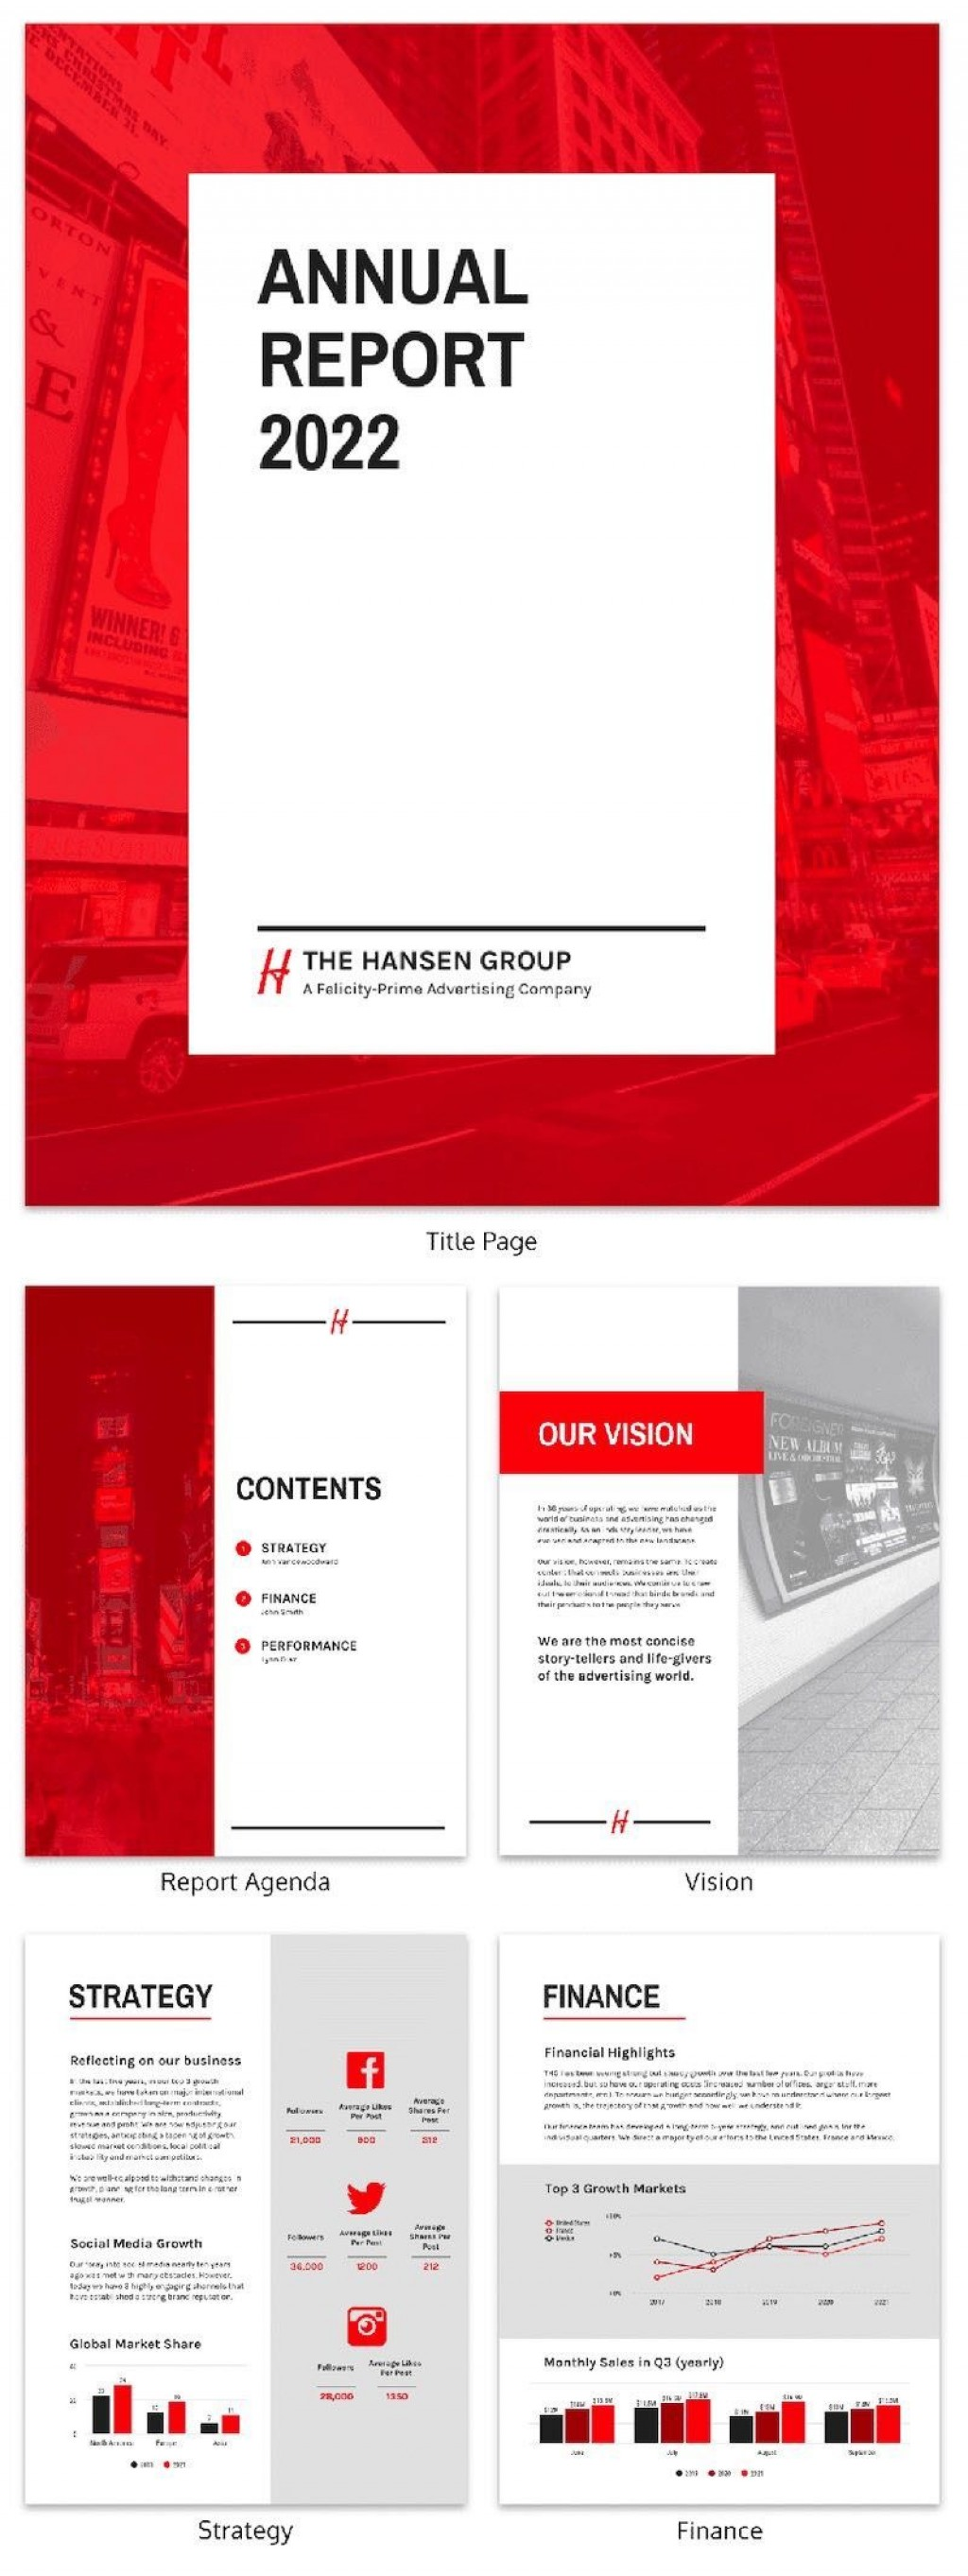 009 Amazing Annual Report Design Template High Def  Templates Word Timeles Free Download InLarge